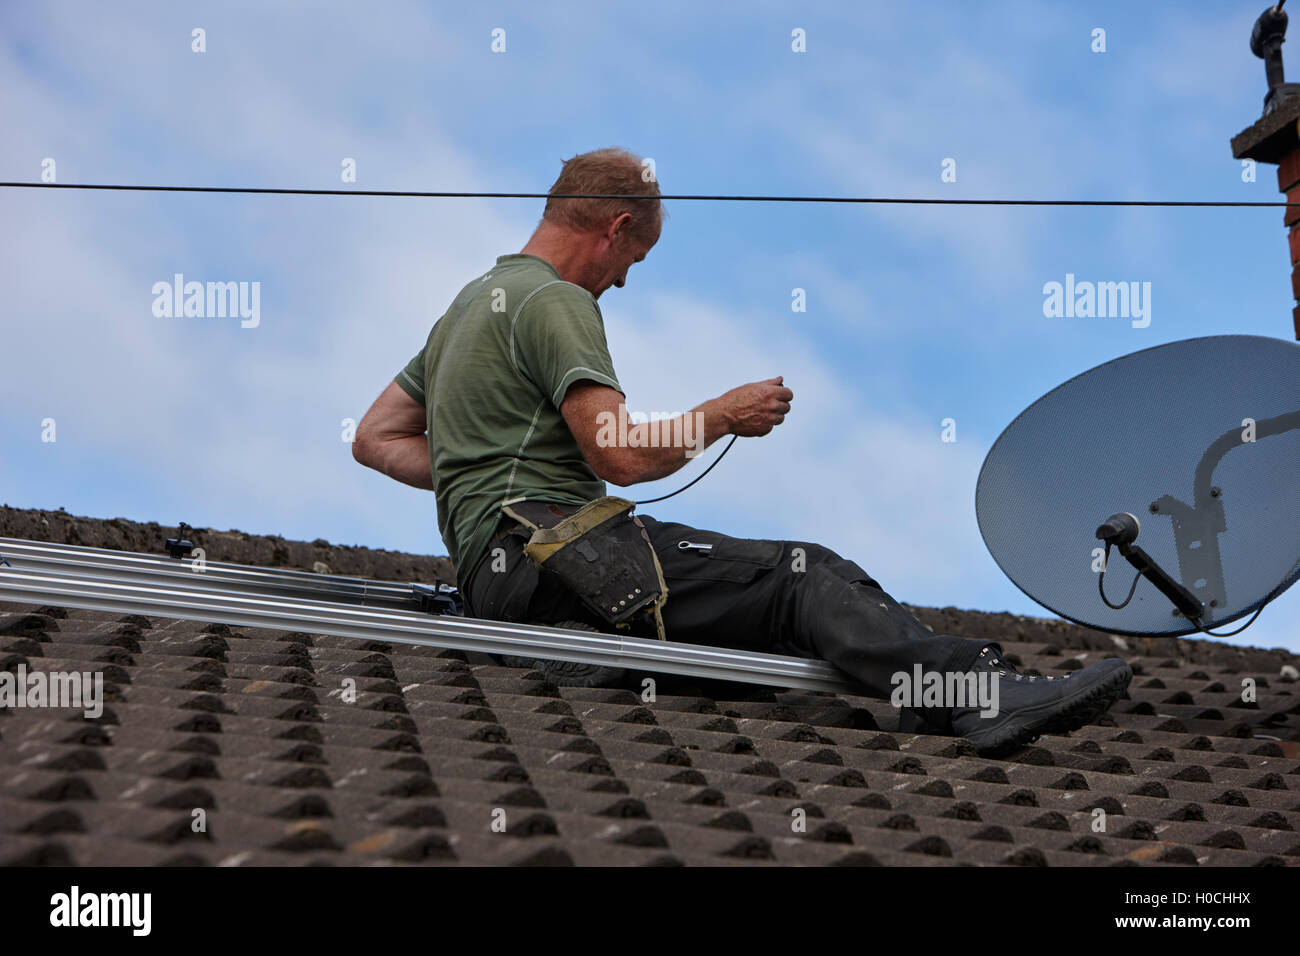 Wiring Money Stock Photos Images Alamy How To Workman Installing Rails And For Rooftop Solar Panel Array In A Domestic Installation